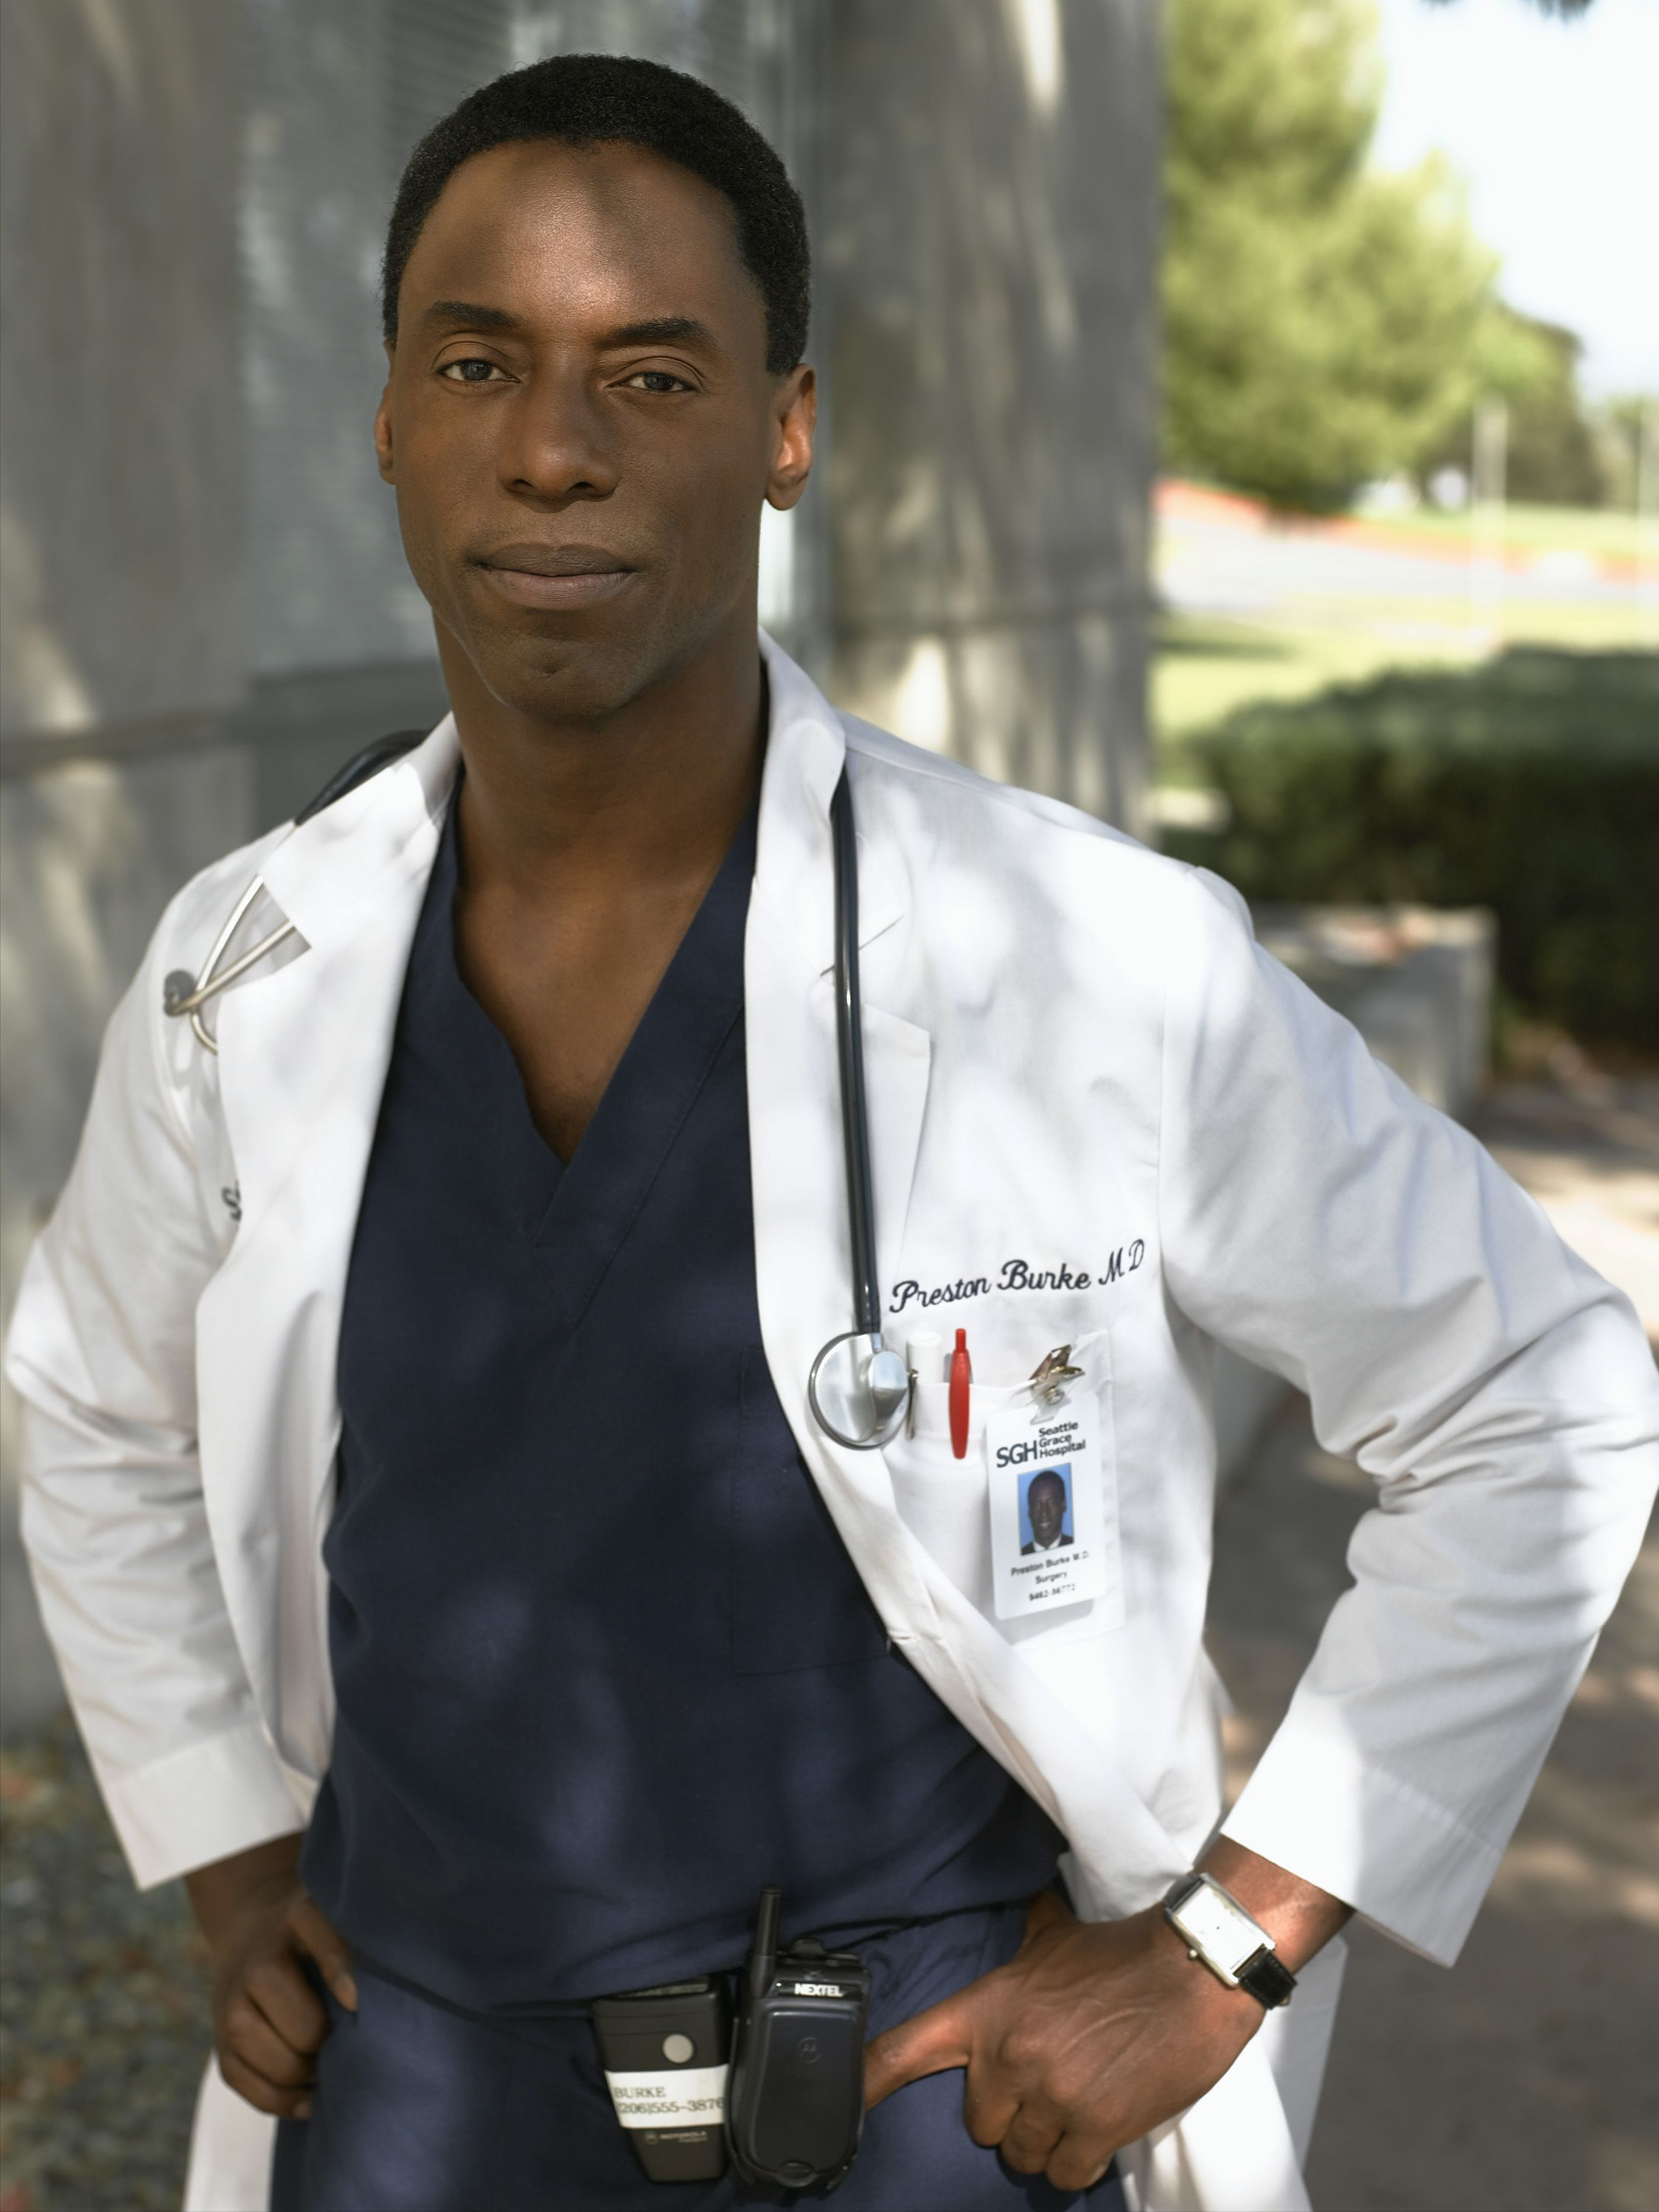 Dr. Preston Burke. Had a serious crush on him all through seasons